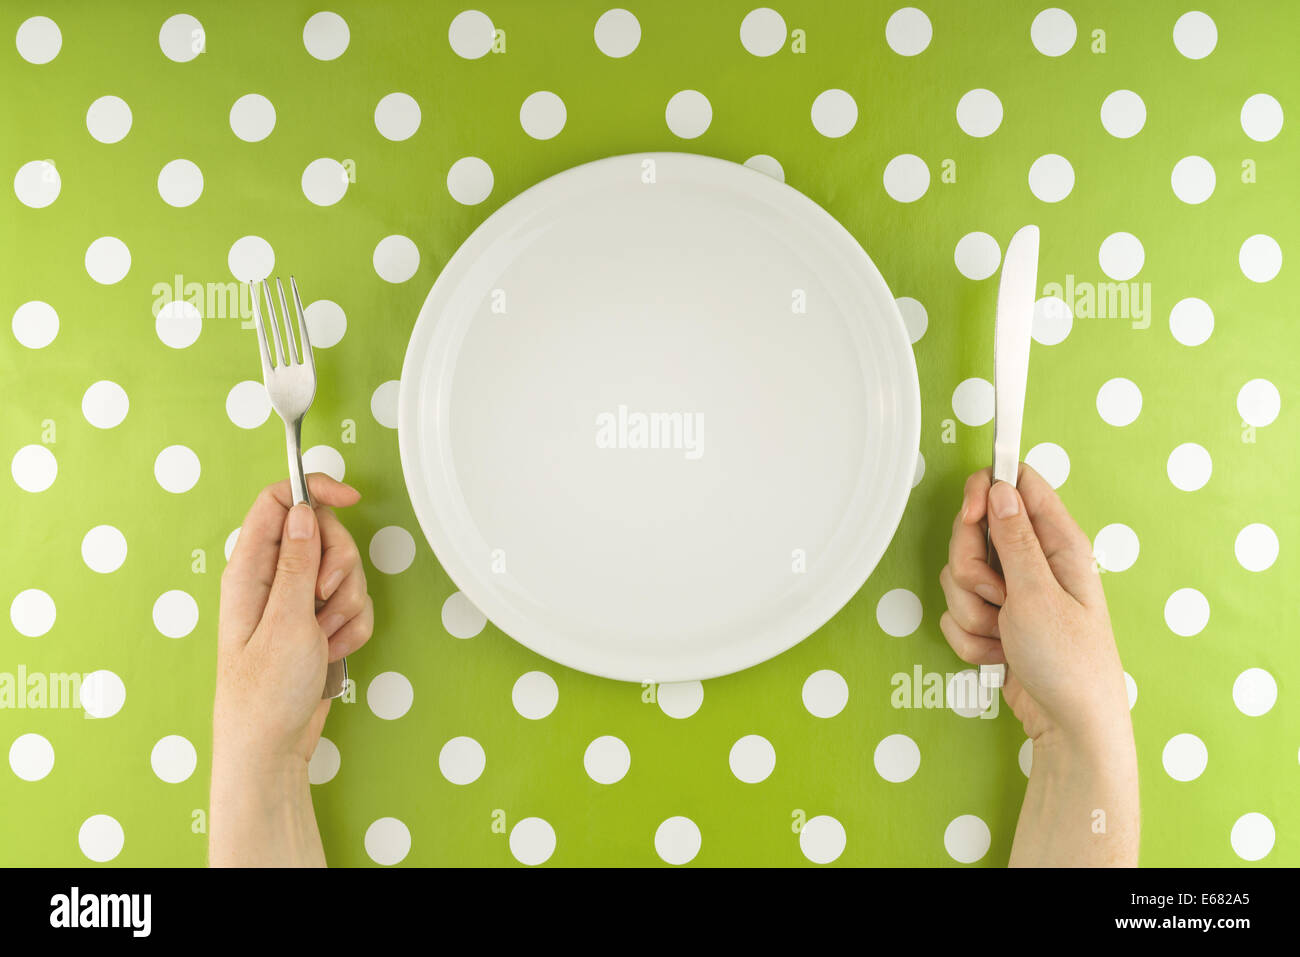 Female hands at dinner table holding fork and a knife above empty flat white plate, dieting concept. - Stock Image